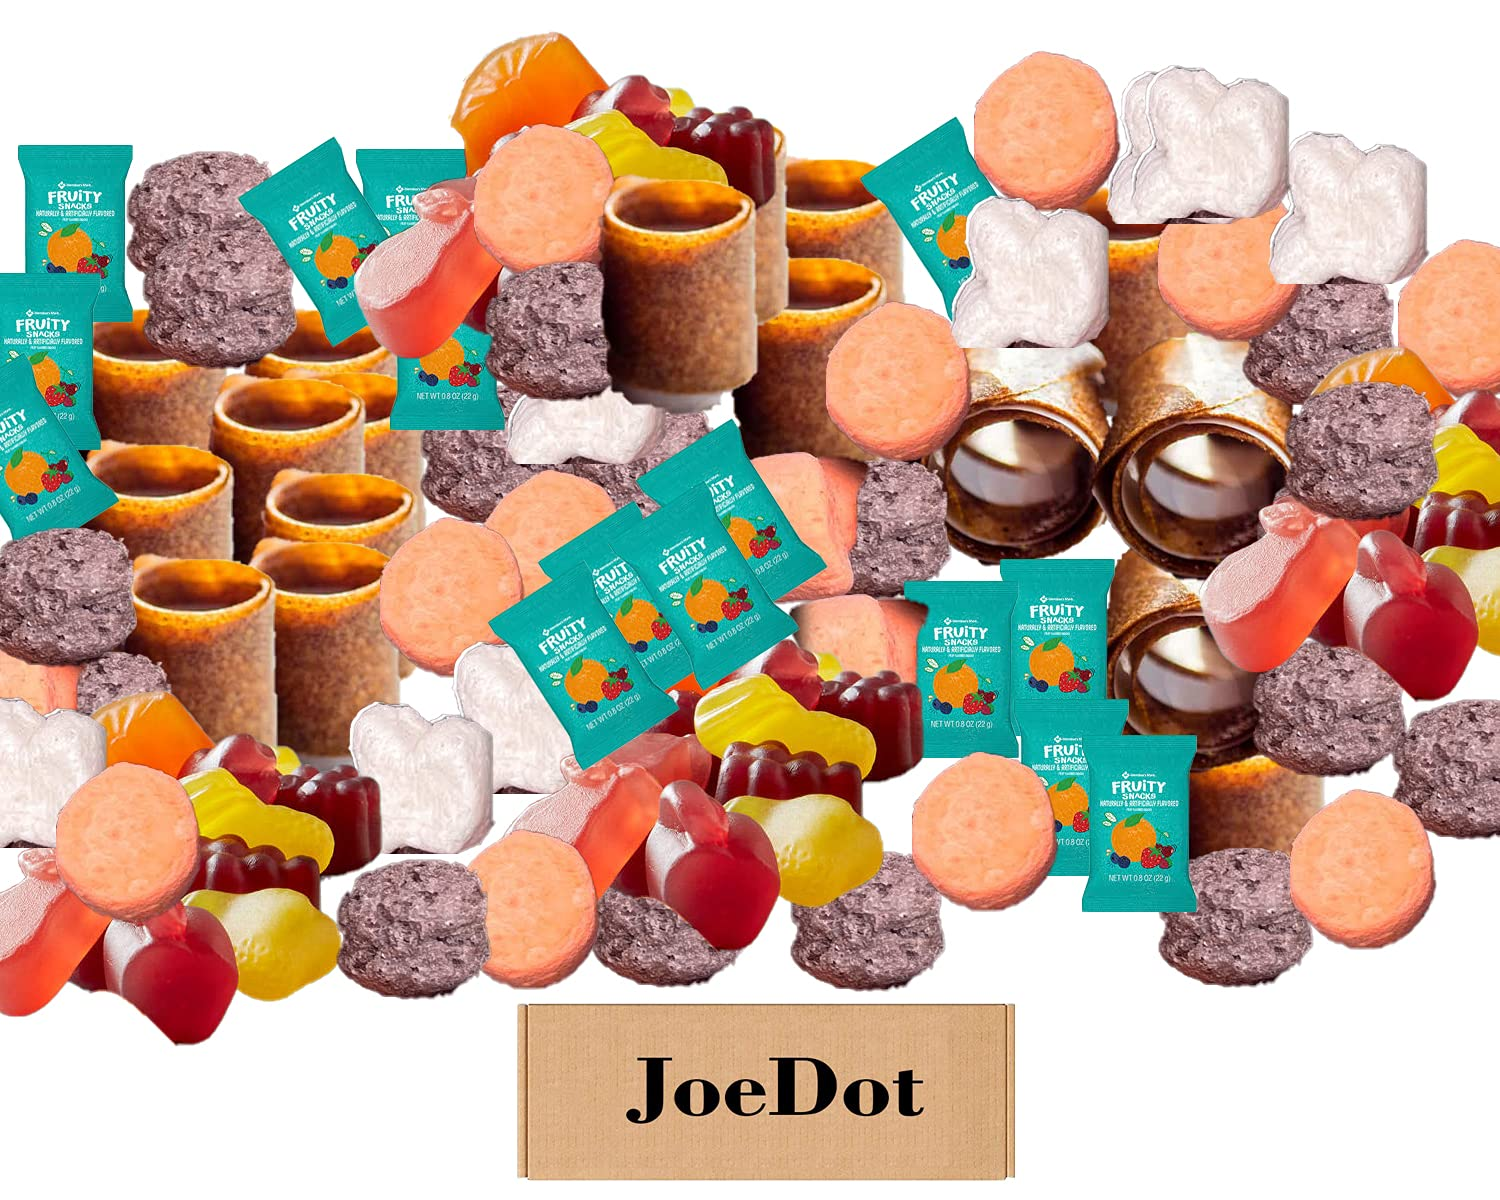 JOEDOT FRUIT SNACKS Dedication VARIETY PACK Complete Free Shipping Snacks 0.8 CONTAINS Fruity oz